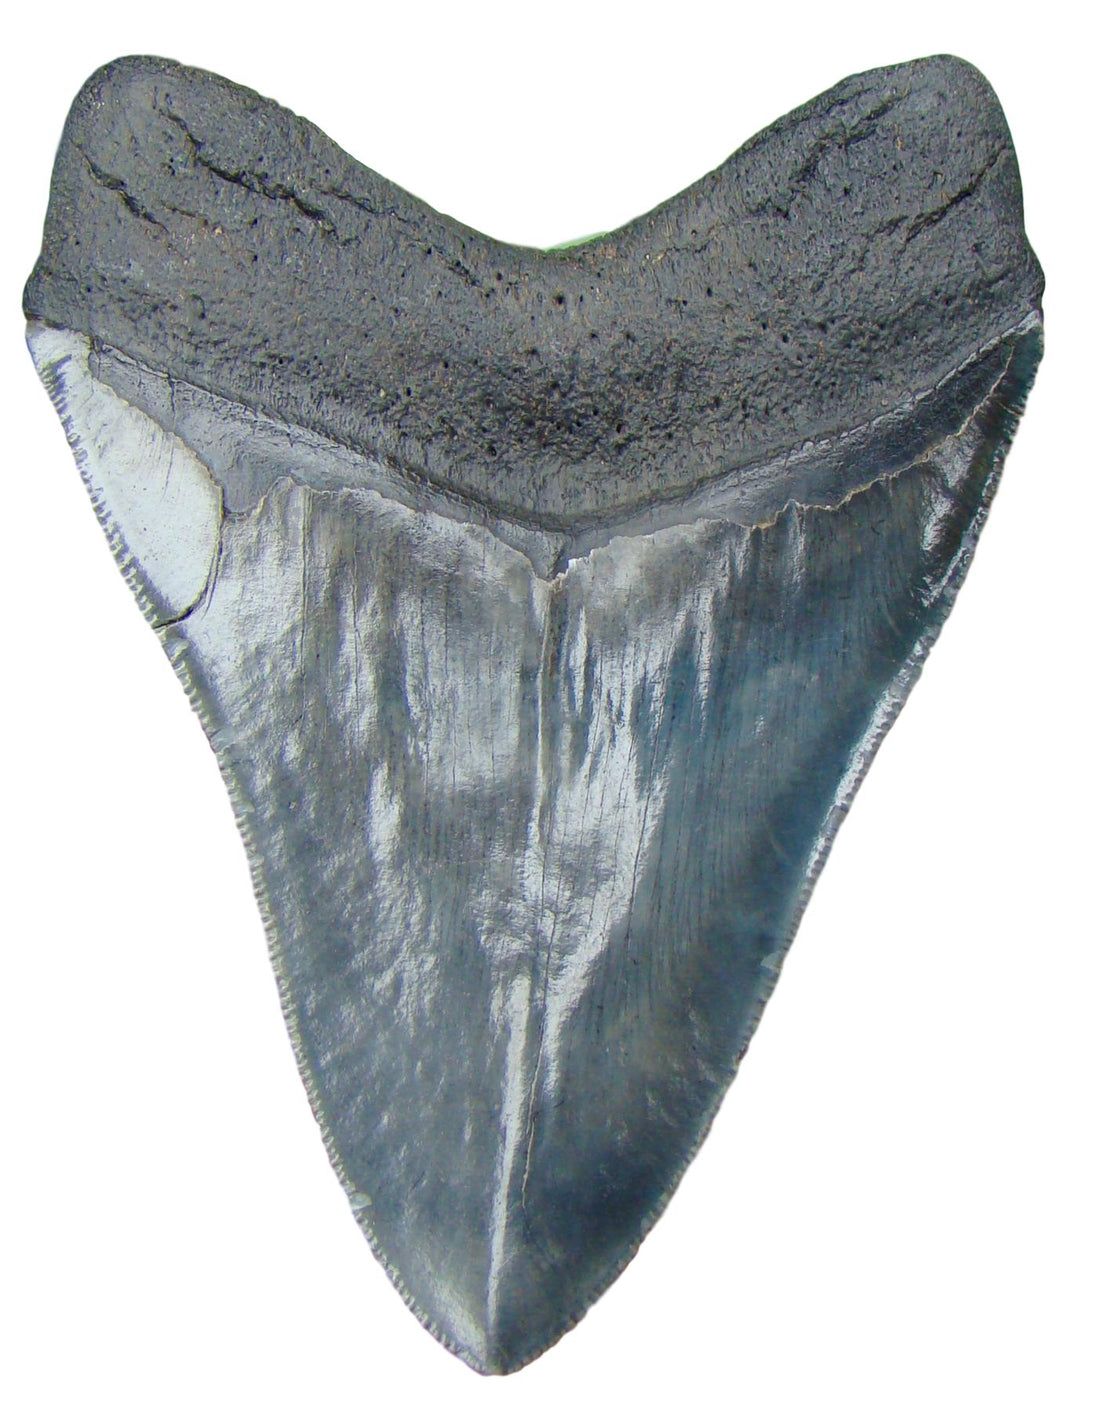 Megalodon Tooth 4 & 7/8 inch - SERRATED  - South Carolina Megalodon Shark Tooth